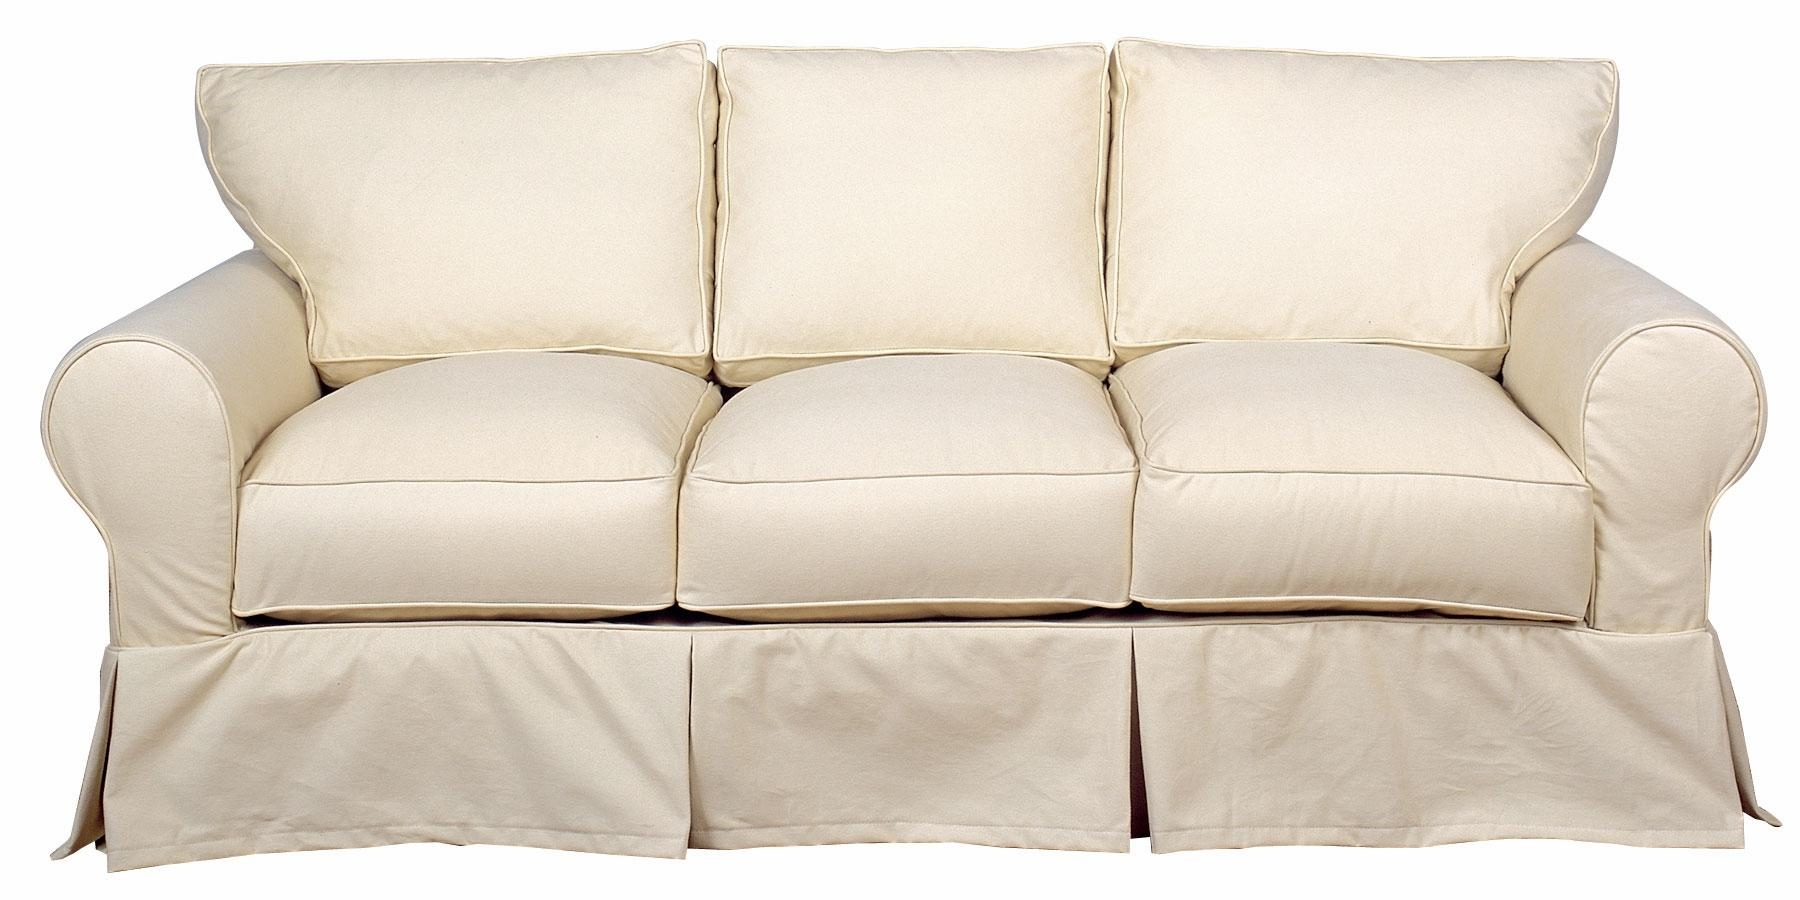 20 Ideas Of Loveseat Slipcovers 3 Pieces Sofa Ideas